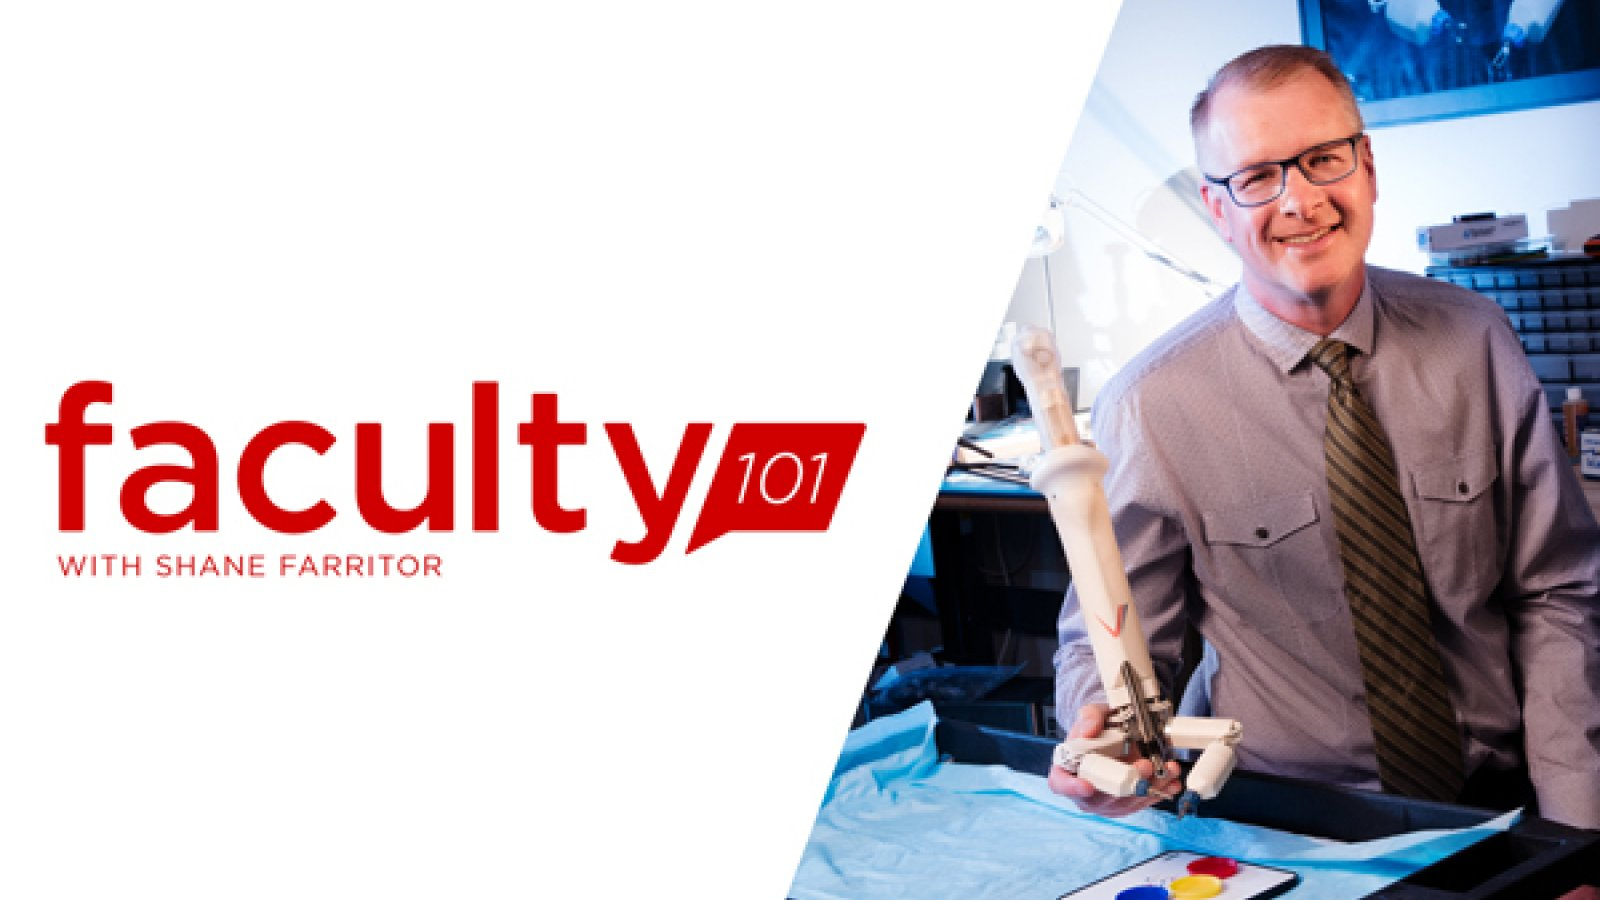 Shane Farritor, professor of mechanical and materials engineering, is featured in the Faculty 101 podcast.